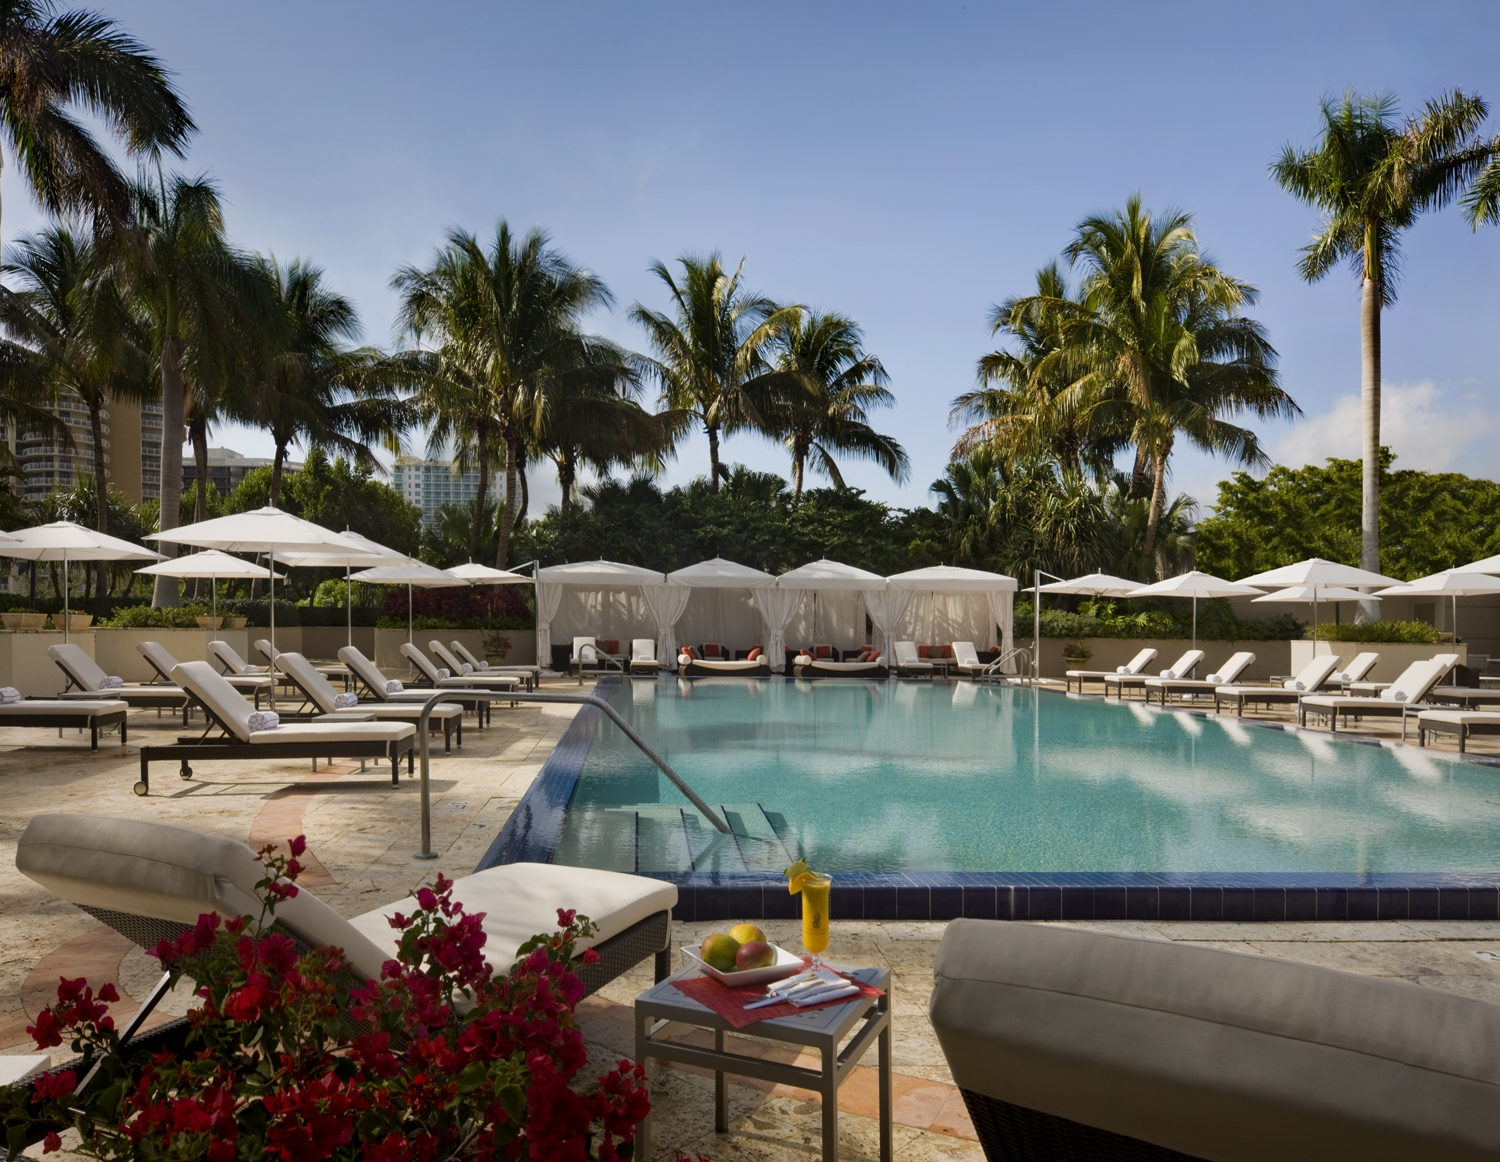 The Ritz Carlton Coconut Grove – Miami, Fl